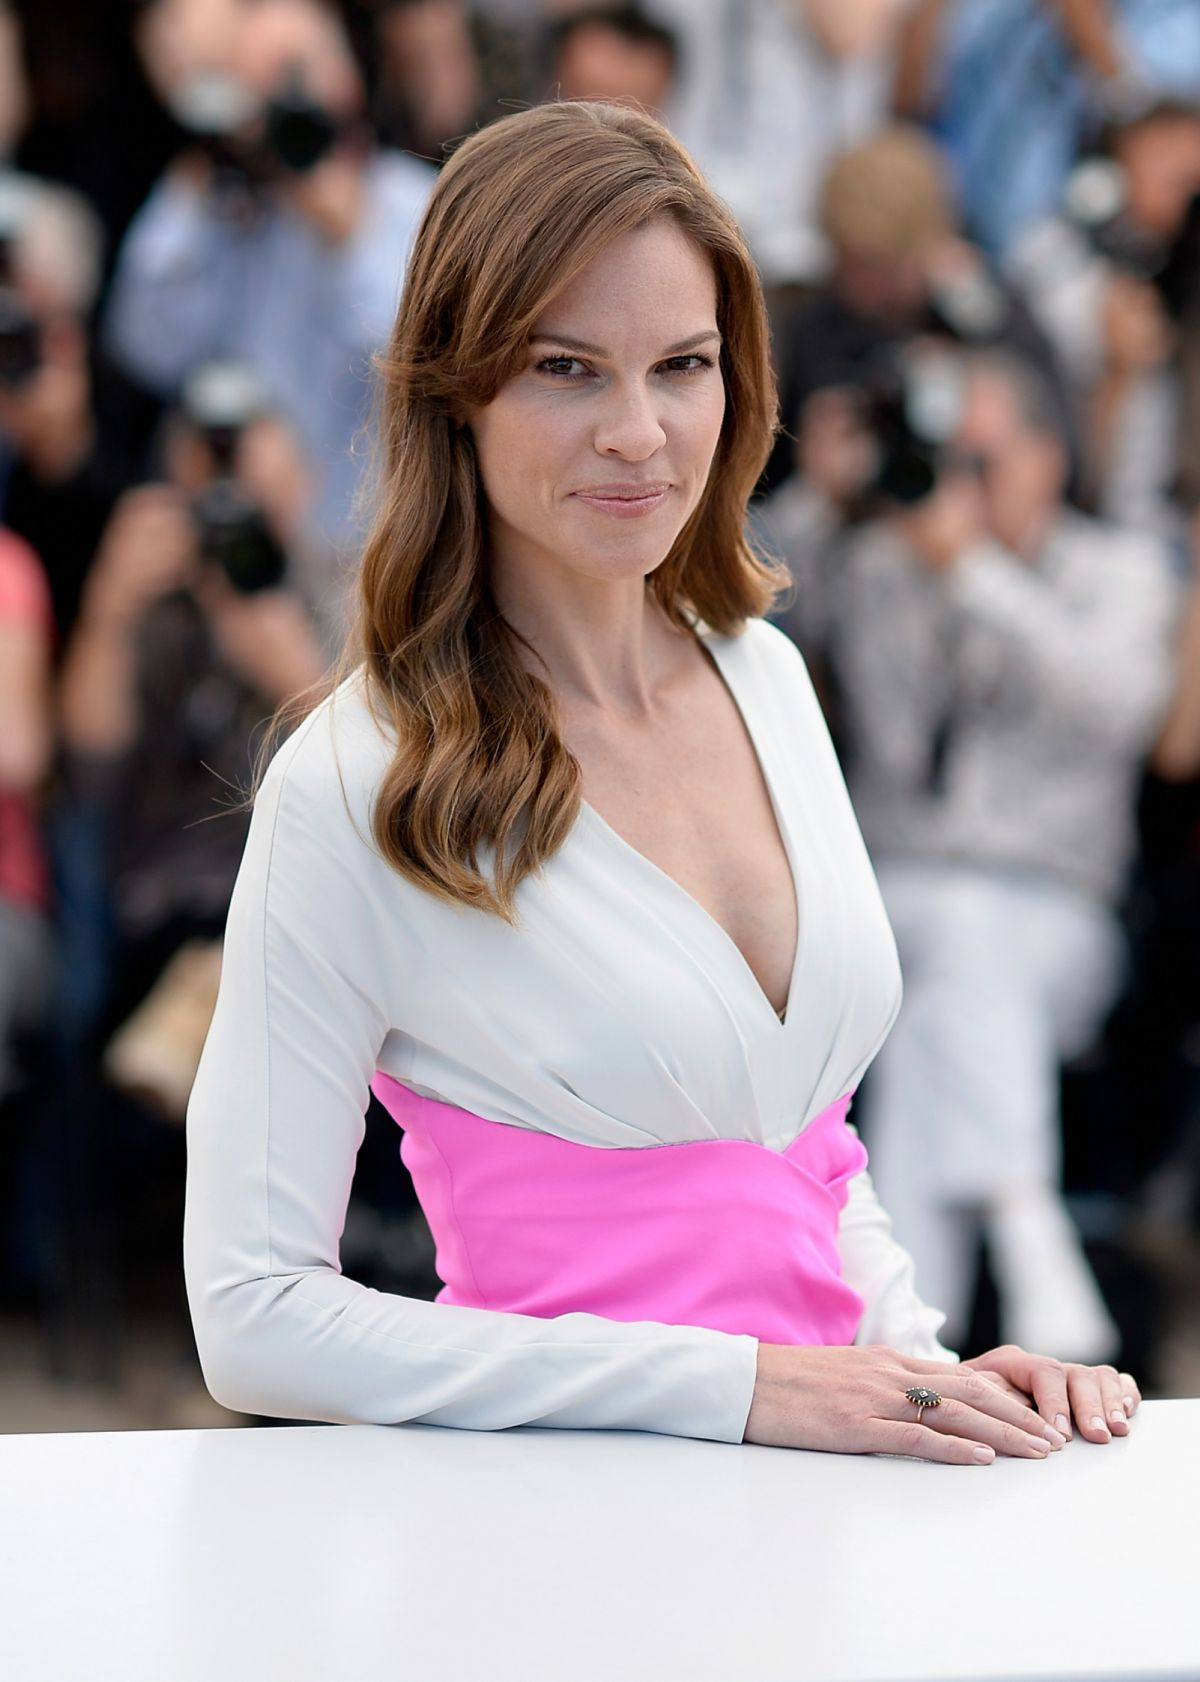 HILARY SWANK at The Homesman Photocall at Cannes Film Festival